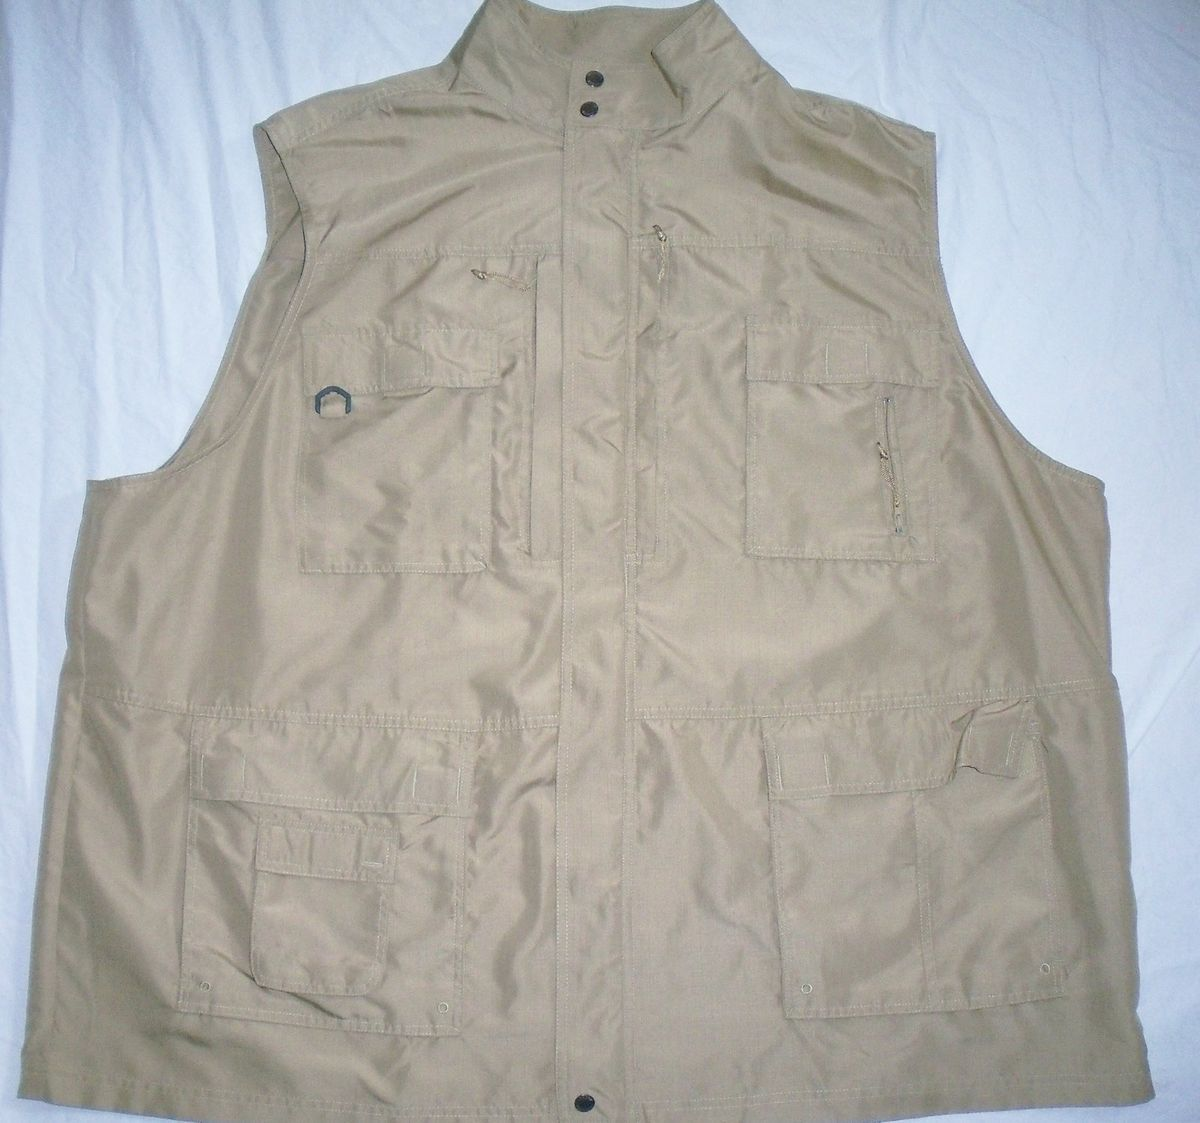 BOULDER CREEK Safari Hun Fish Hike Photog Shirt Top Jacket Vest 12 pkt